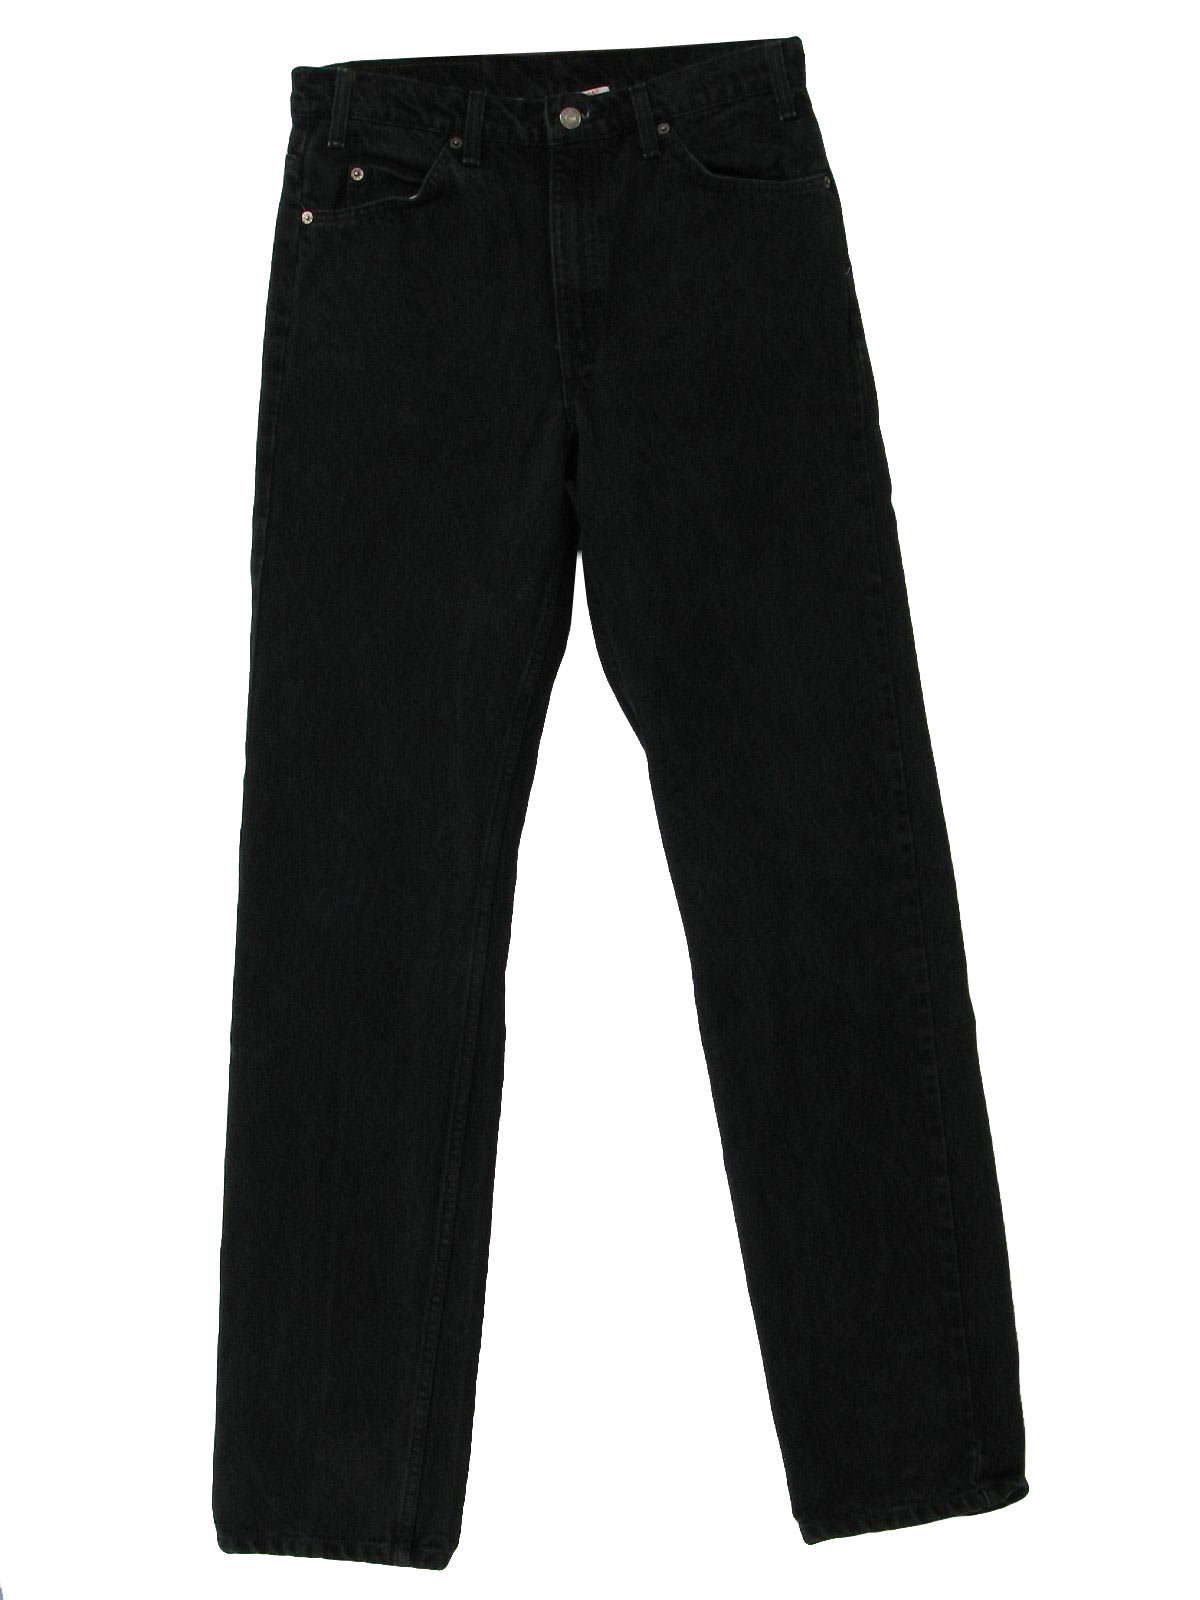 black jeans pants - Pi Pants